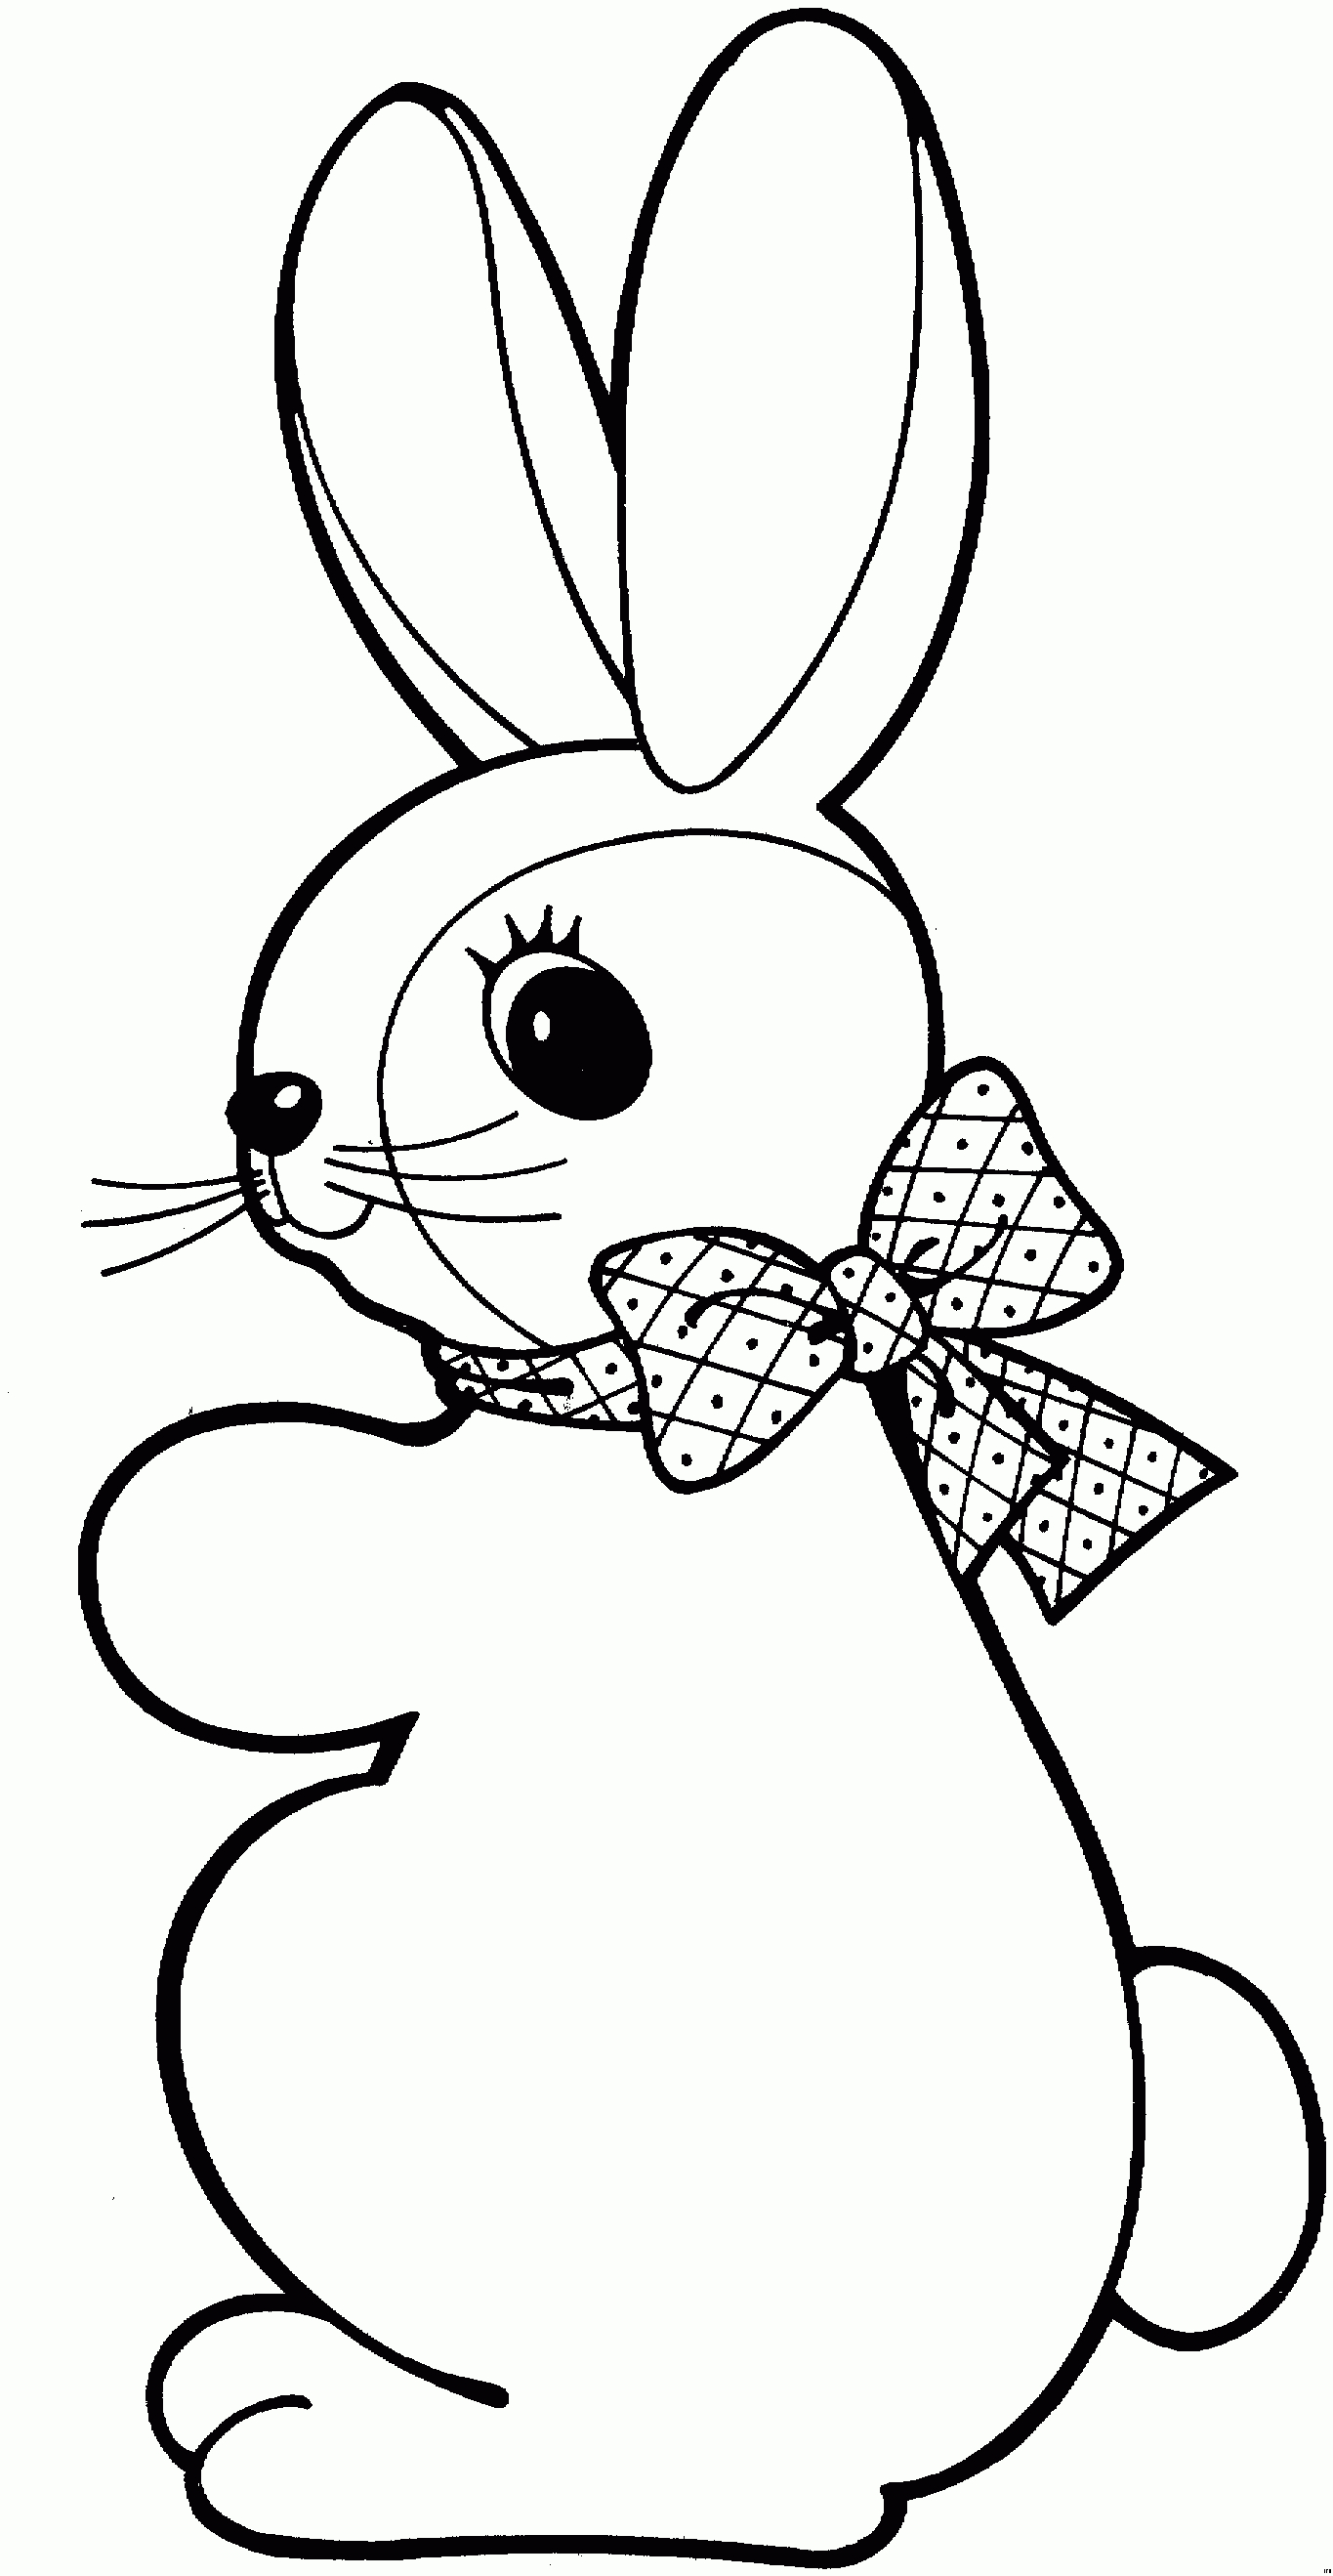 rabbit coloring for kids bunny coloring pages best coloring pages for kids for kids coloring rabbit